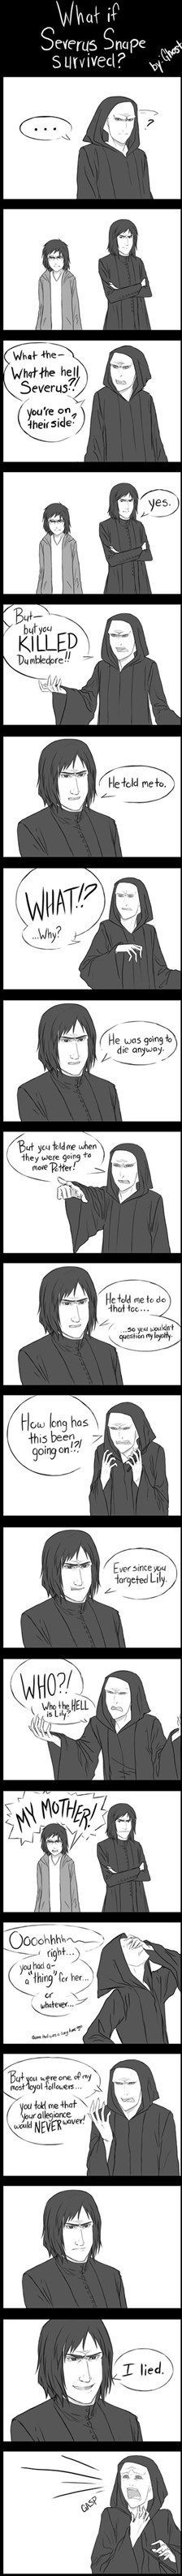 I would much prefer it this way. You Can't Just Do That, Severus!